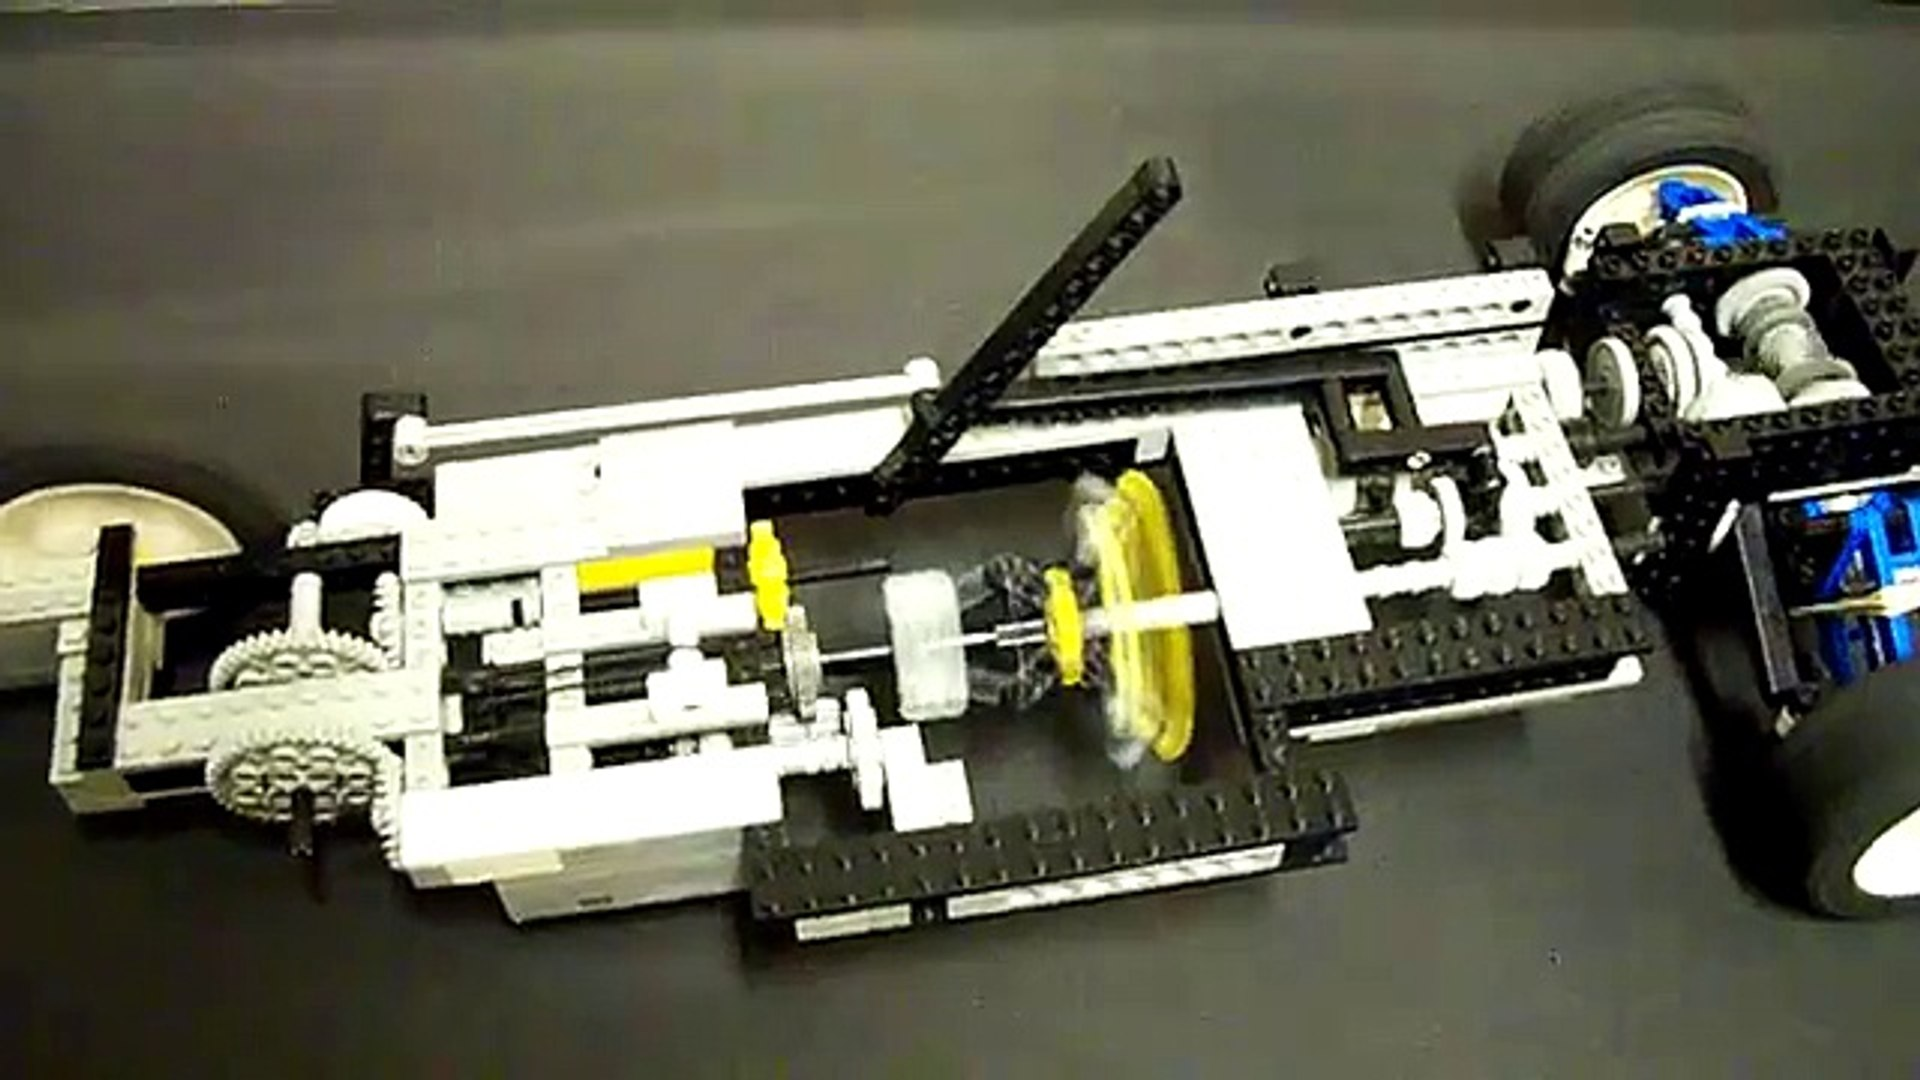 Automatic Lego Transmission Using A Fly Wheel Ugly Prototype 1 Video Dailymotion